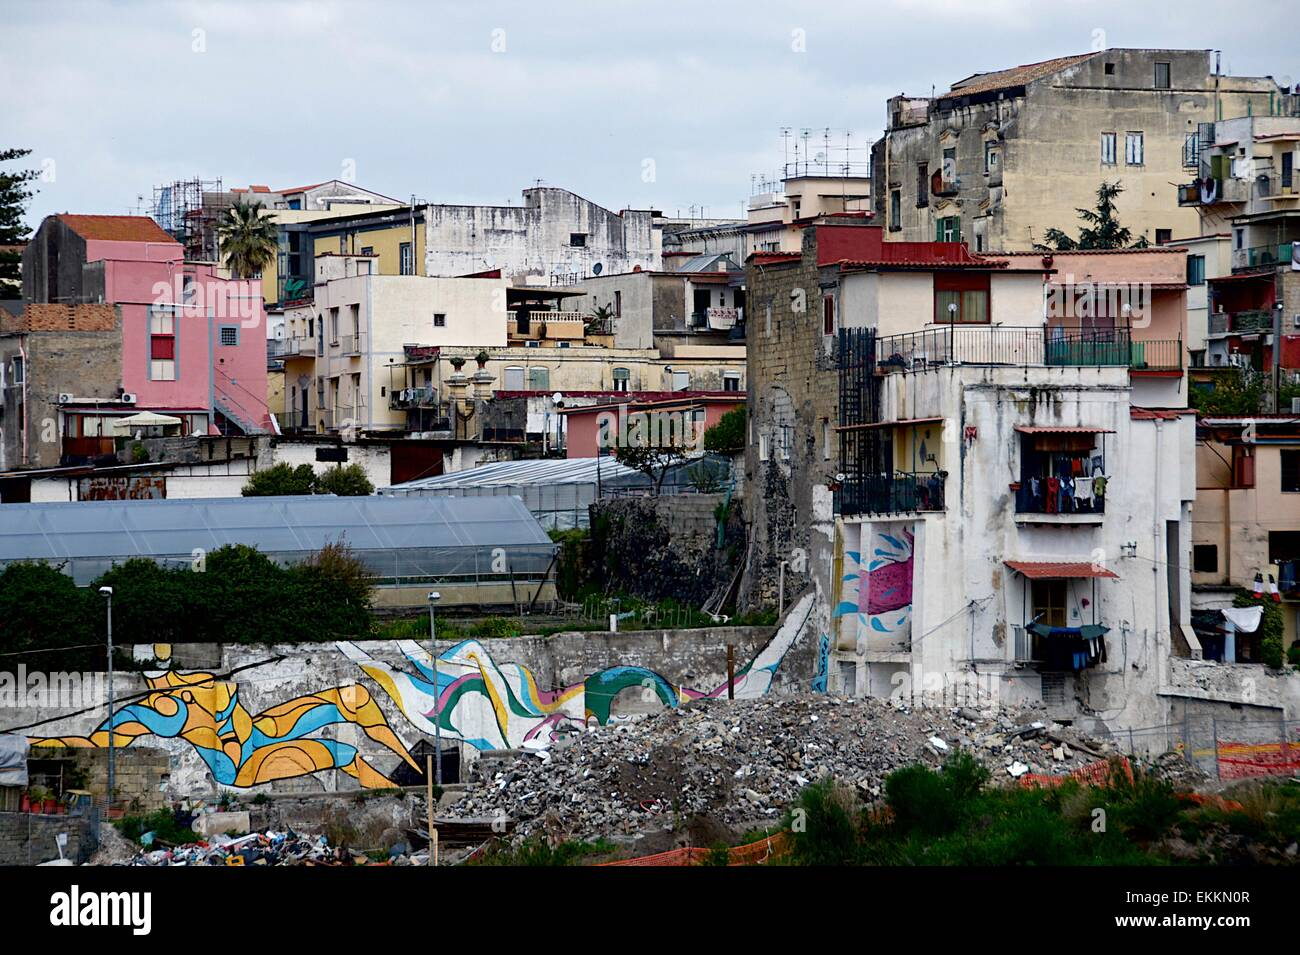 Homes in Ercolano, a poor suburb of Naples, Italy showing living conditions and poverty - Stock Image